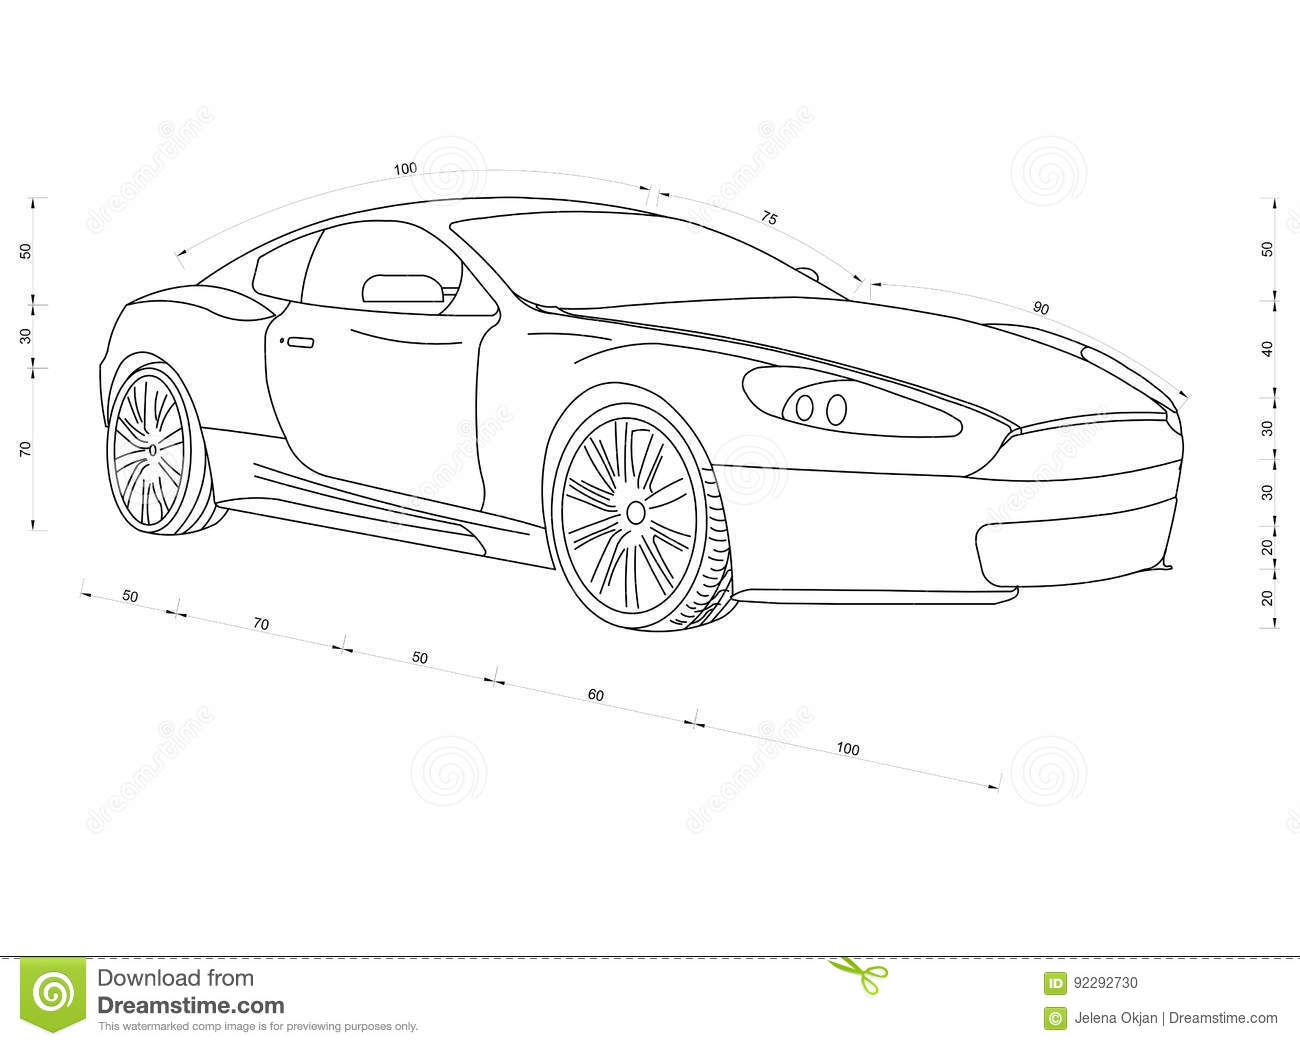 Car blueprint stock illustration illustration of gearing 92292730 car blueprint gearing outline malvernweather Choice Image